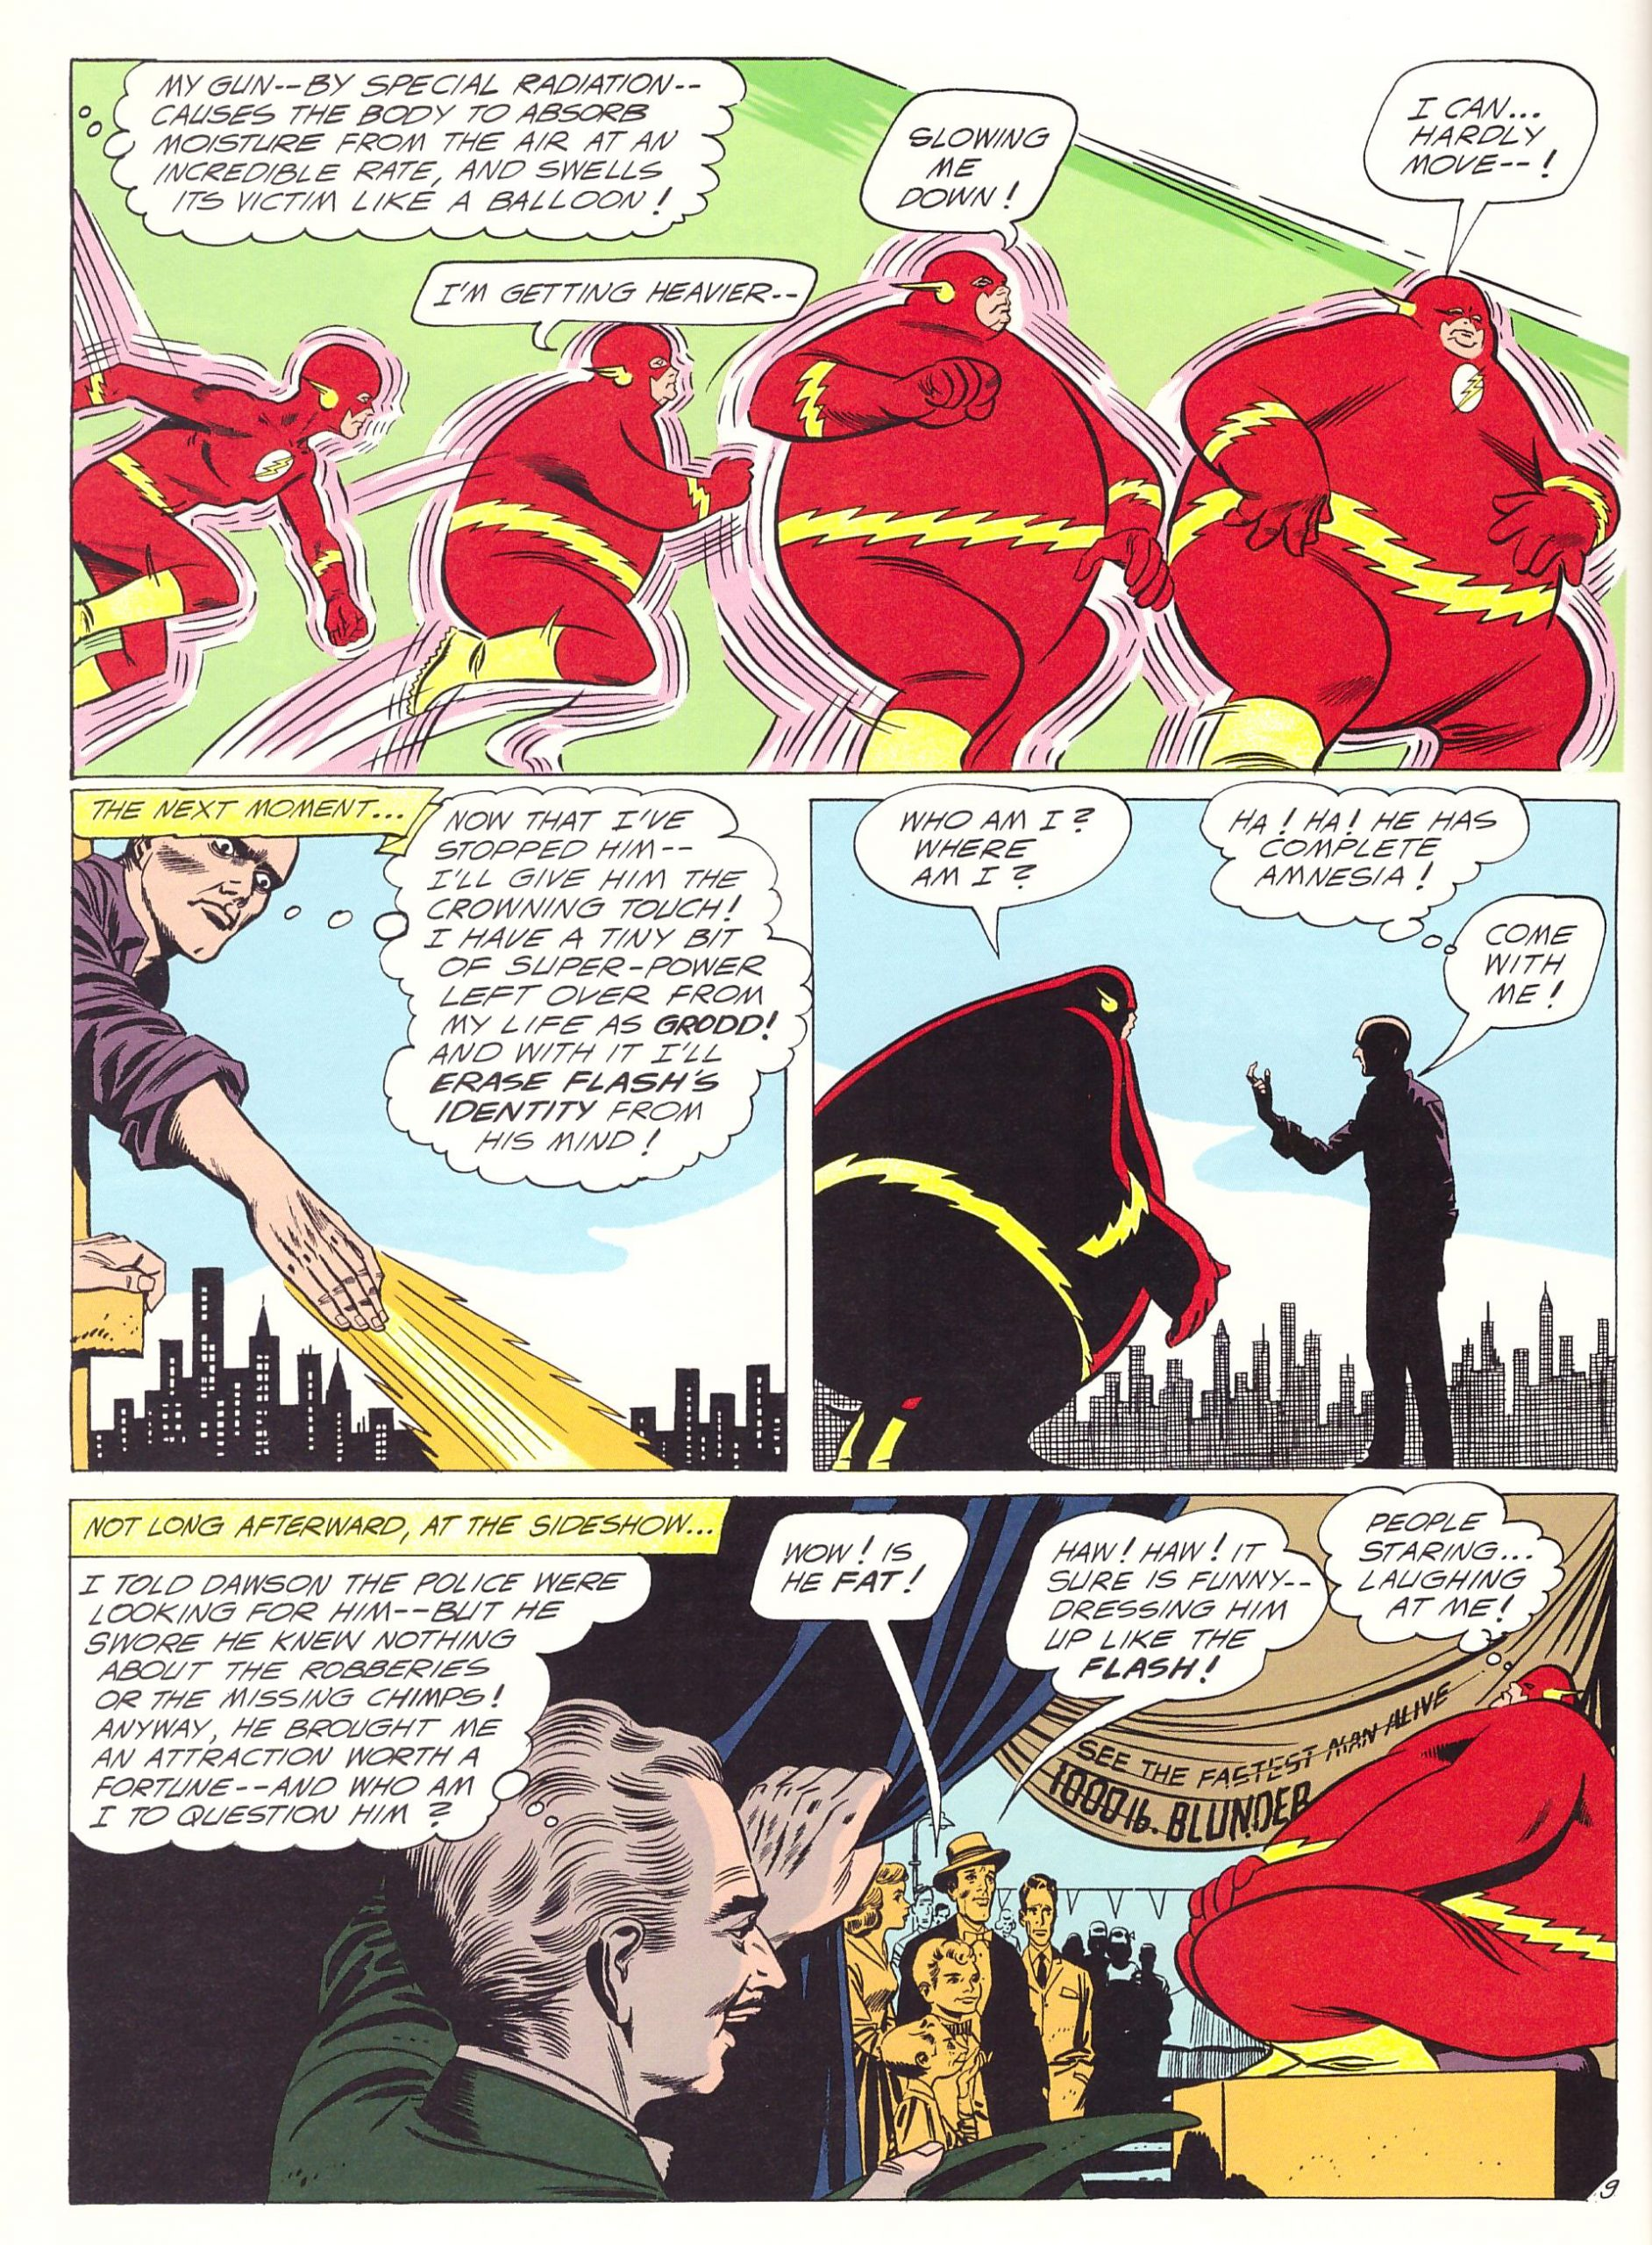 The Flash Chronicles Vol 3 review